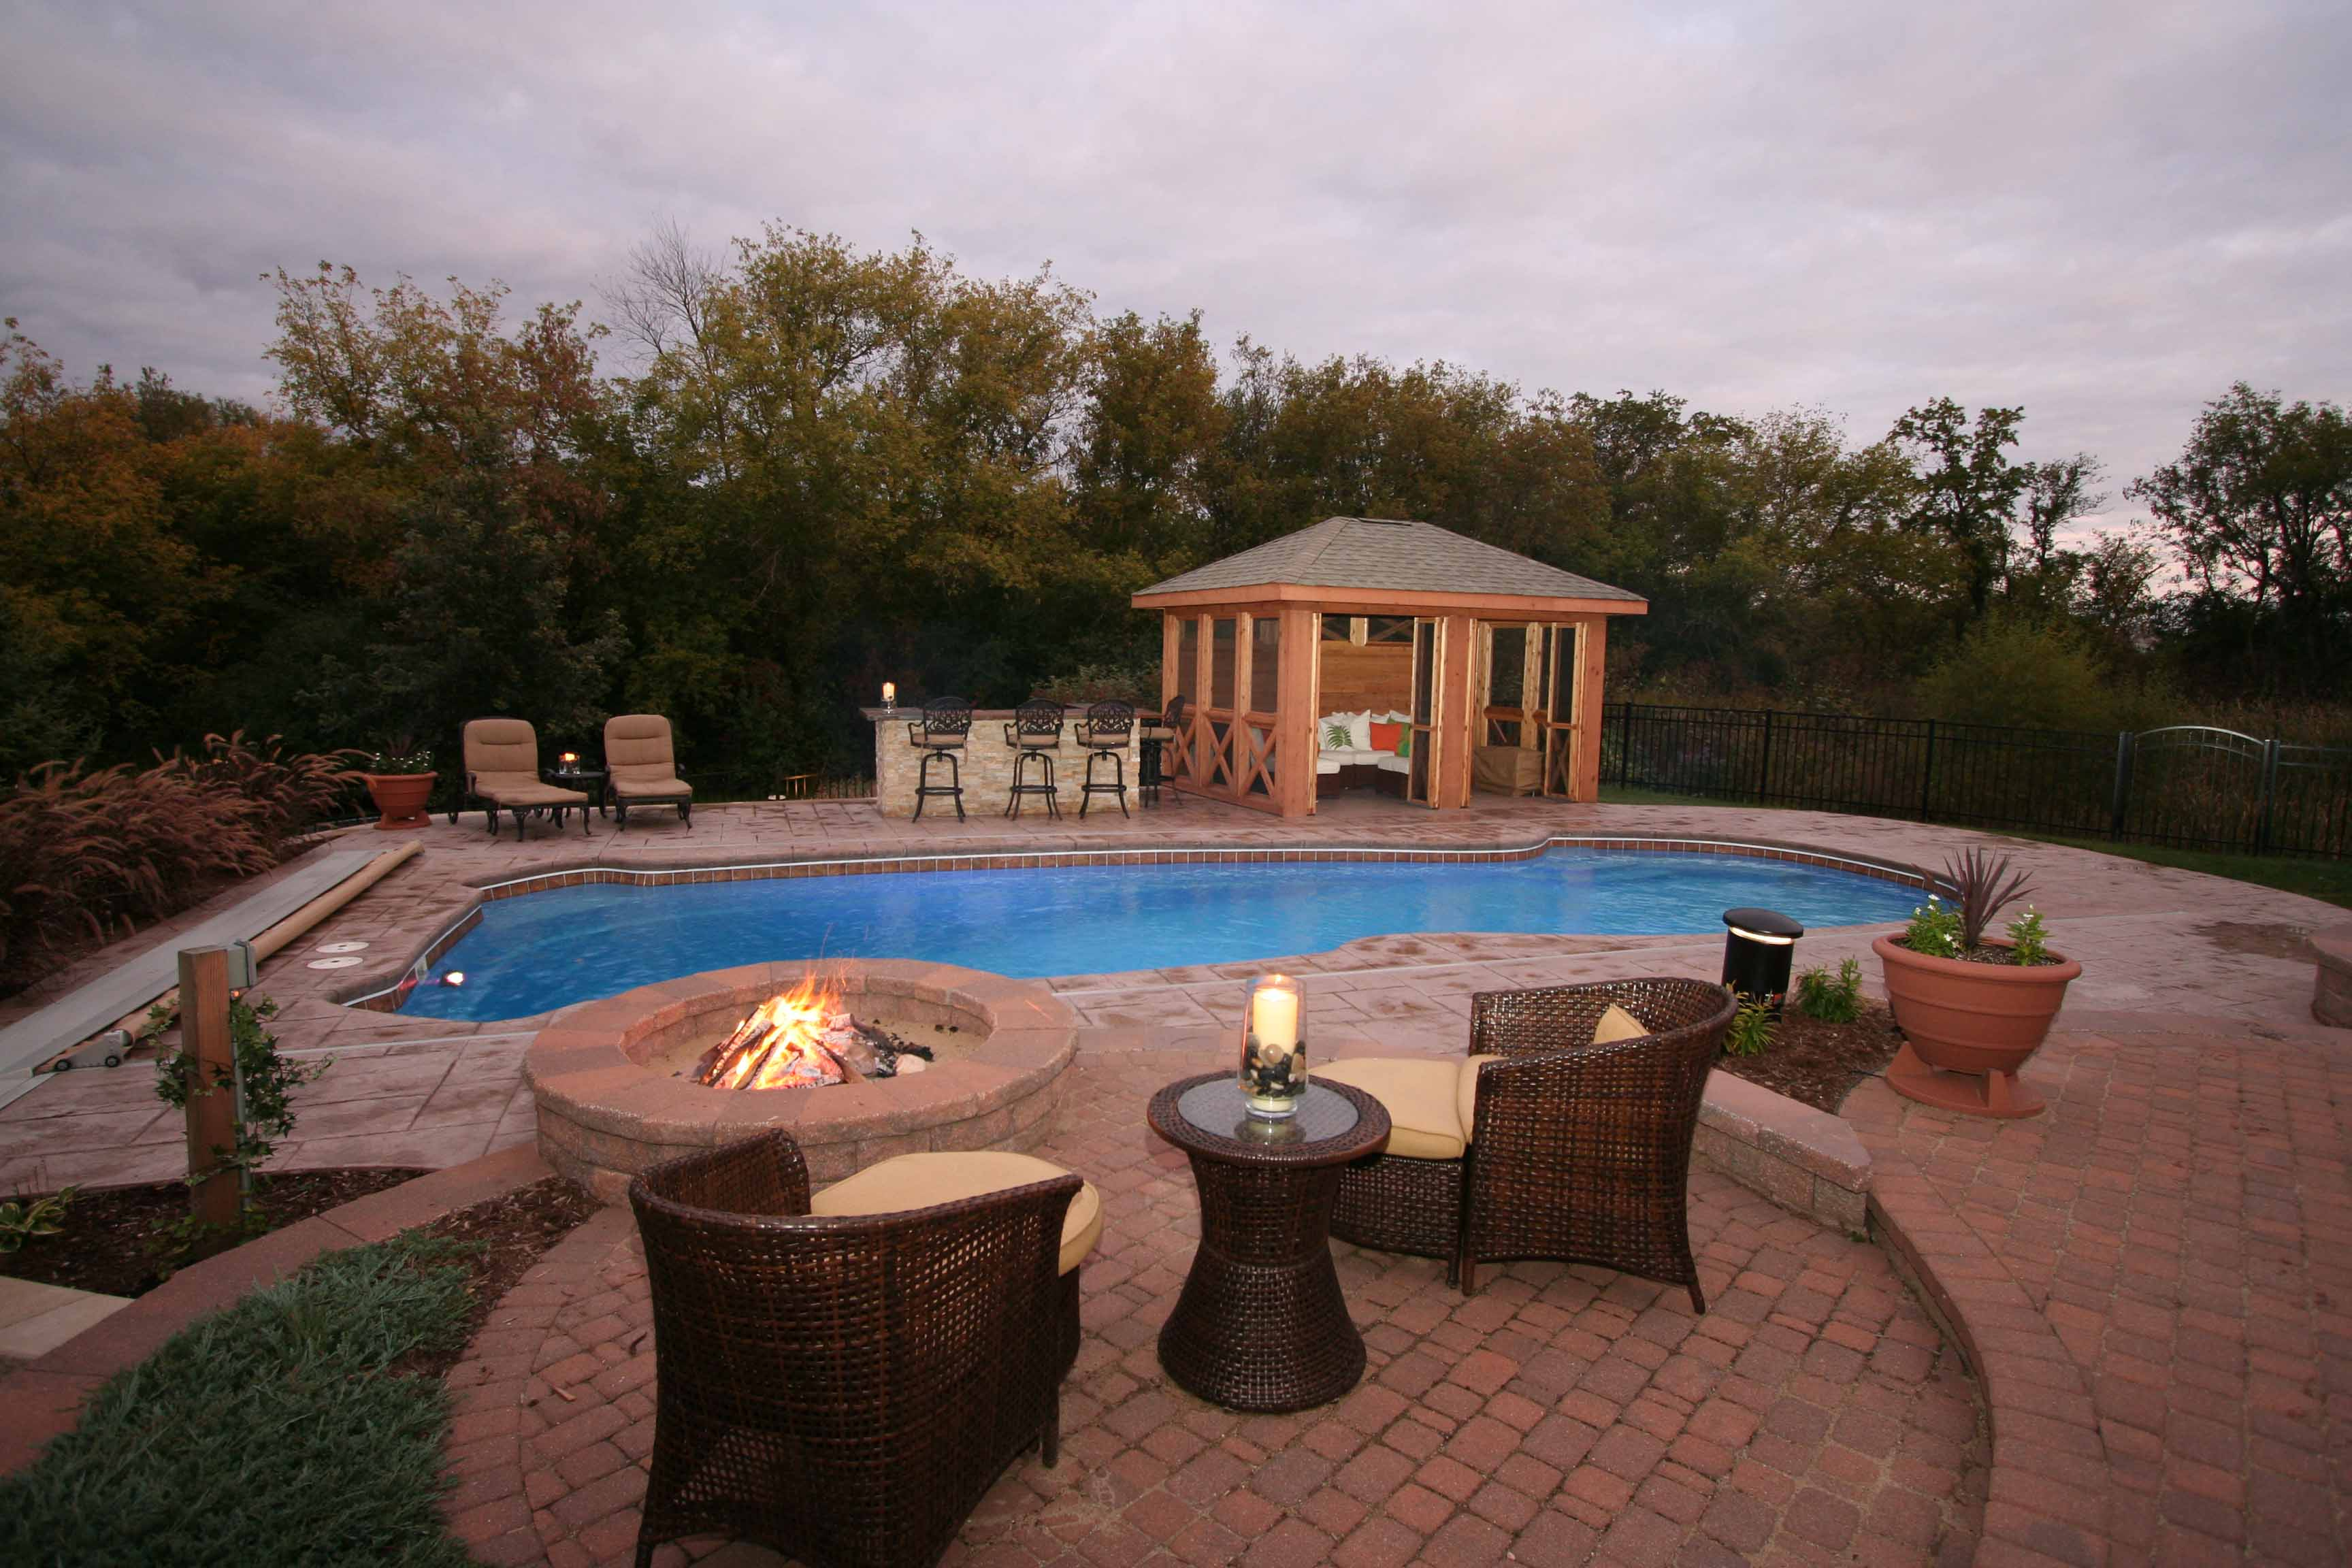 Swimming pool testimonials reviews and reference letters for Pool design regrets